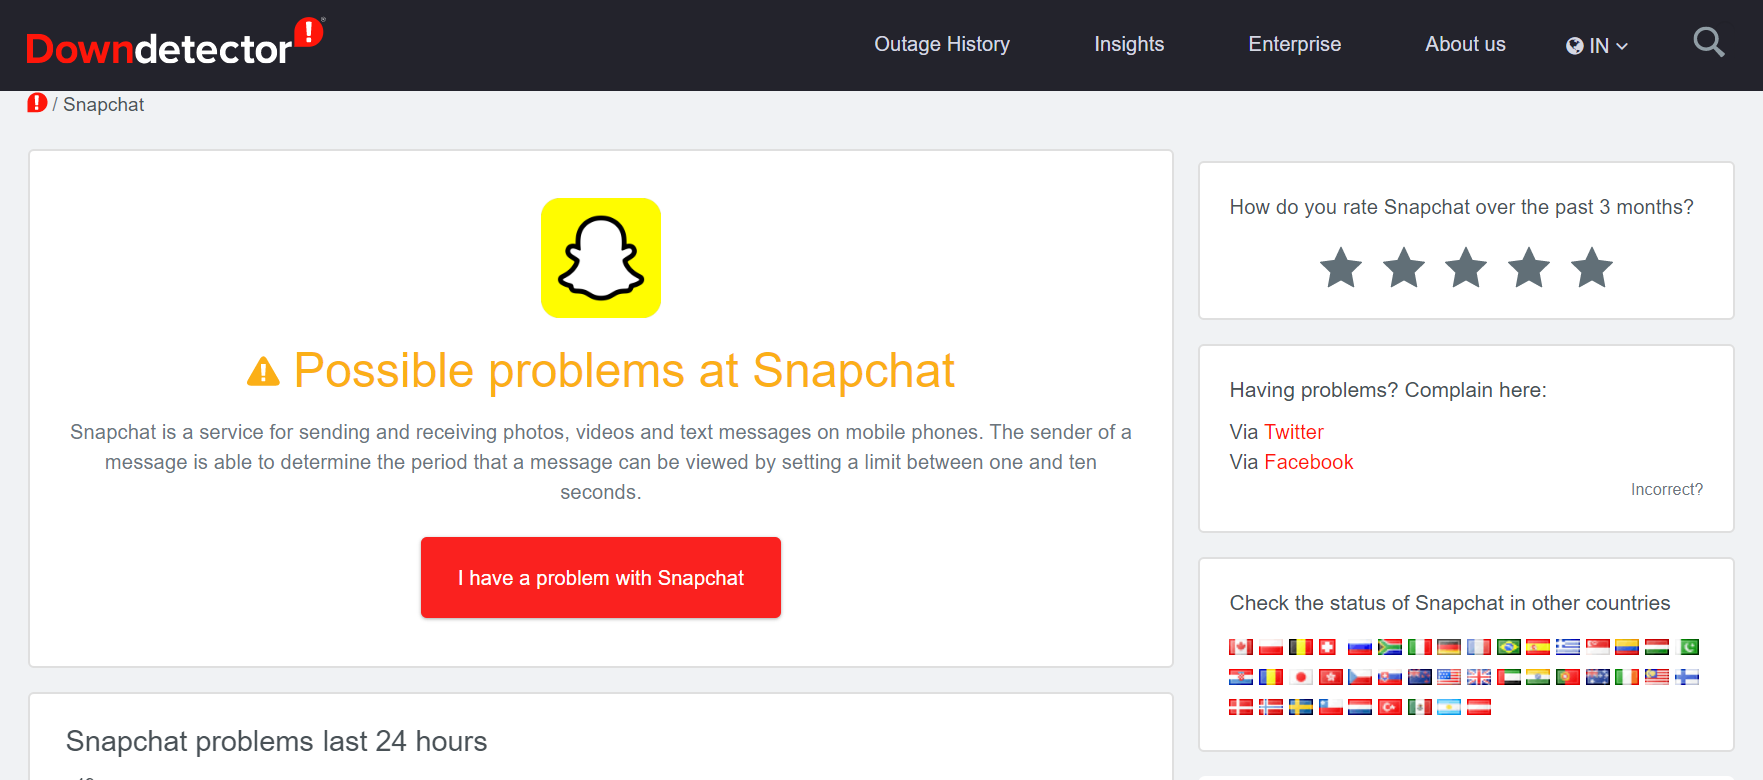 Snapchat is downdetector